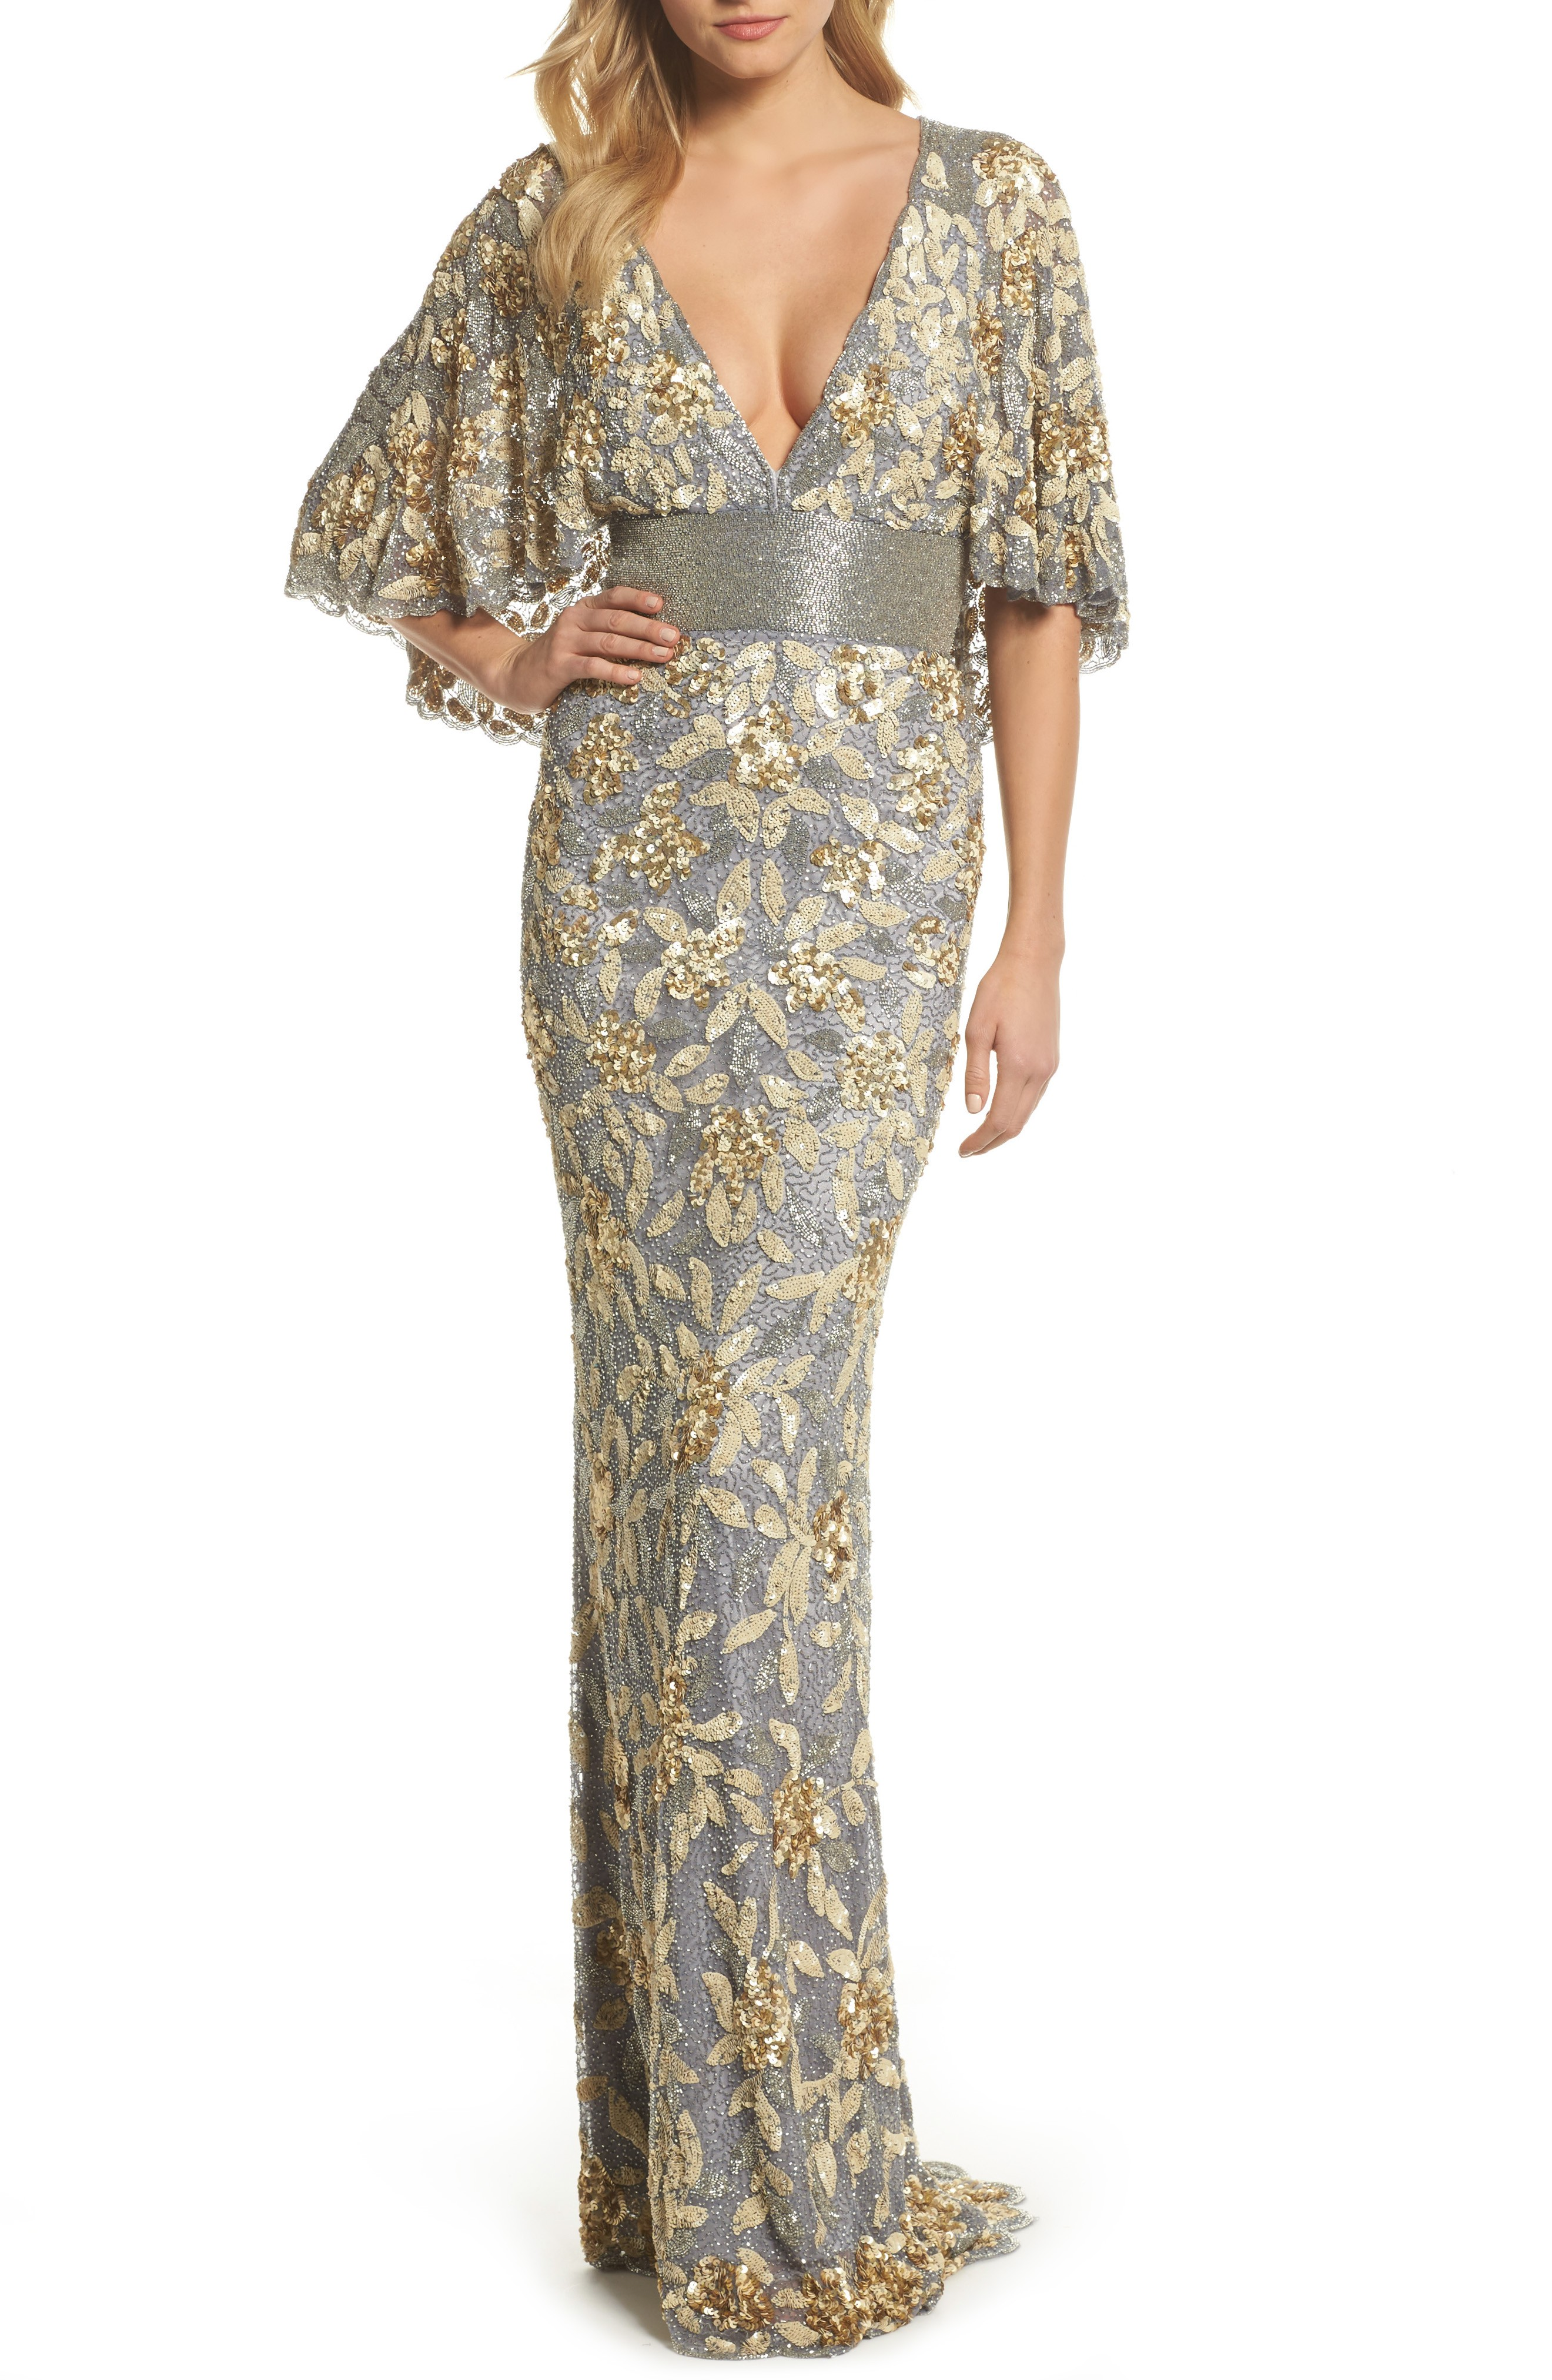 MAC DUGGAL Sequin & Bead Embellished Platinum / Gold Gown - We ...